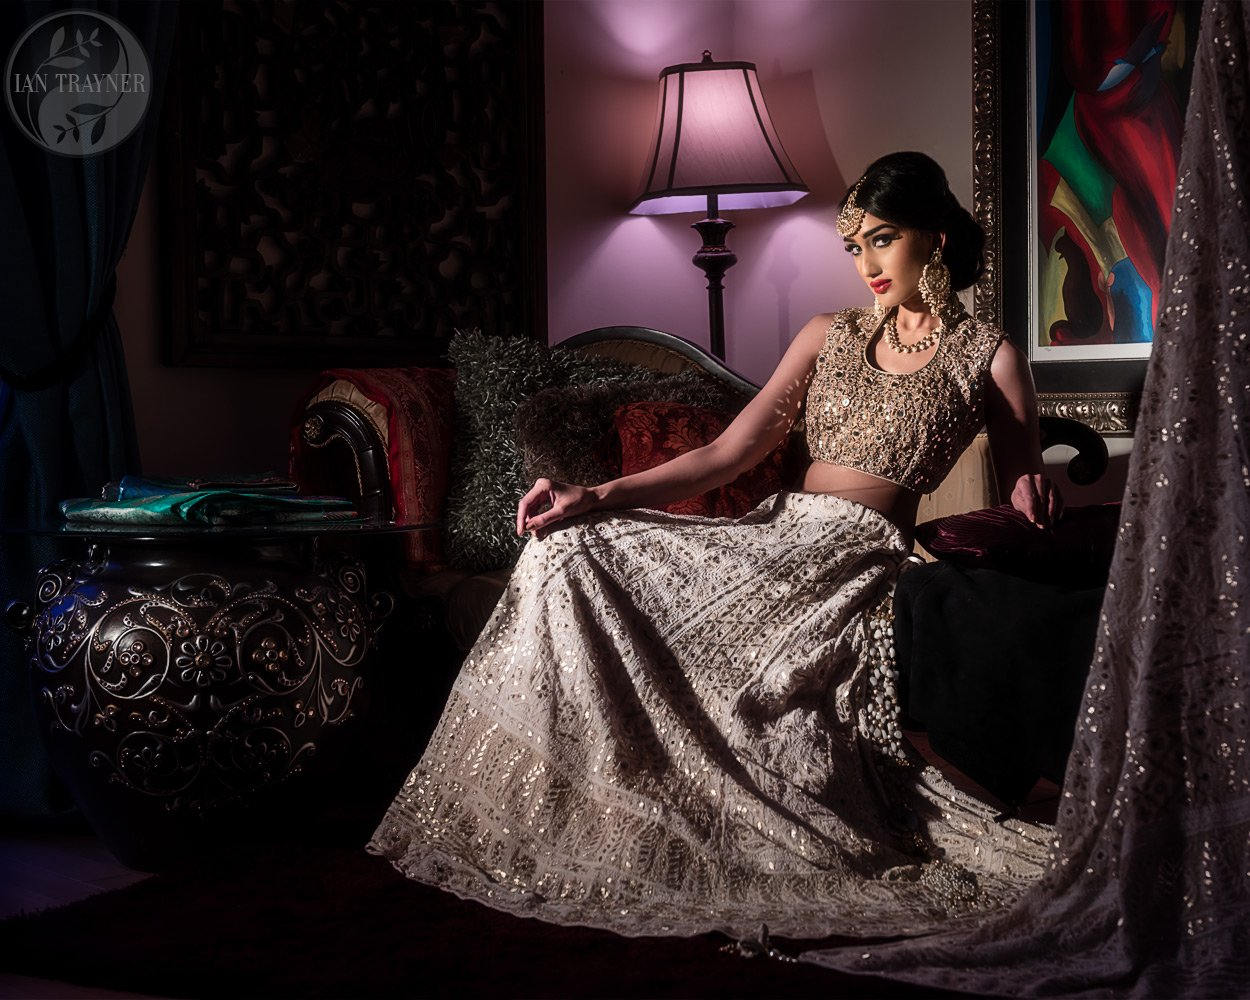 Commercial asian bridal fashion photography by Ian Trayner. Photo shoot was in the client's home.